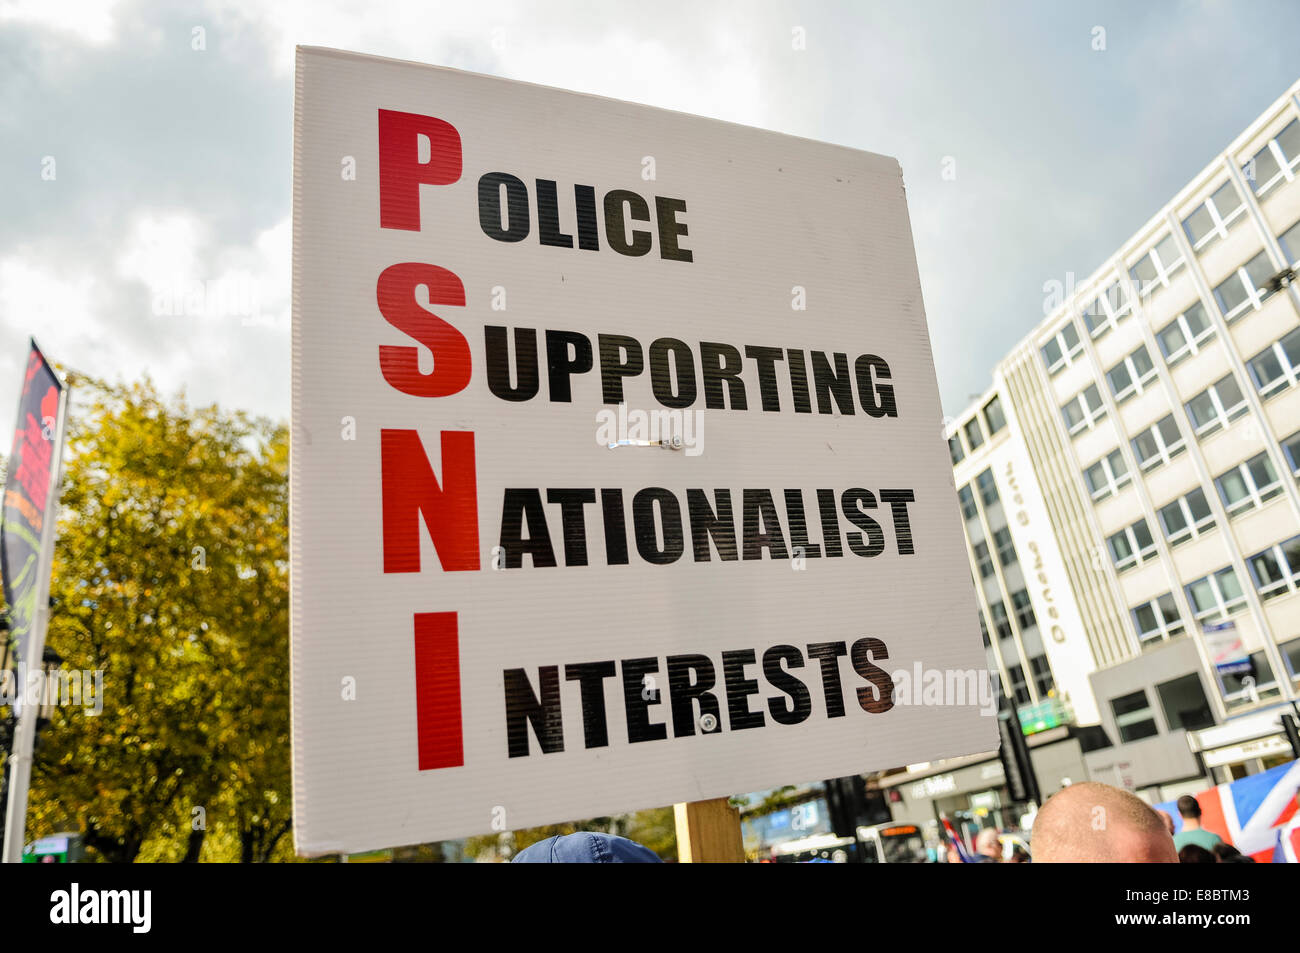 Belfast, Northern Ireland. 4 Oct 2014 - A banner is held up by a Loyalist saying 'PSNI - Police Supporting Nationalist - Stock Image